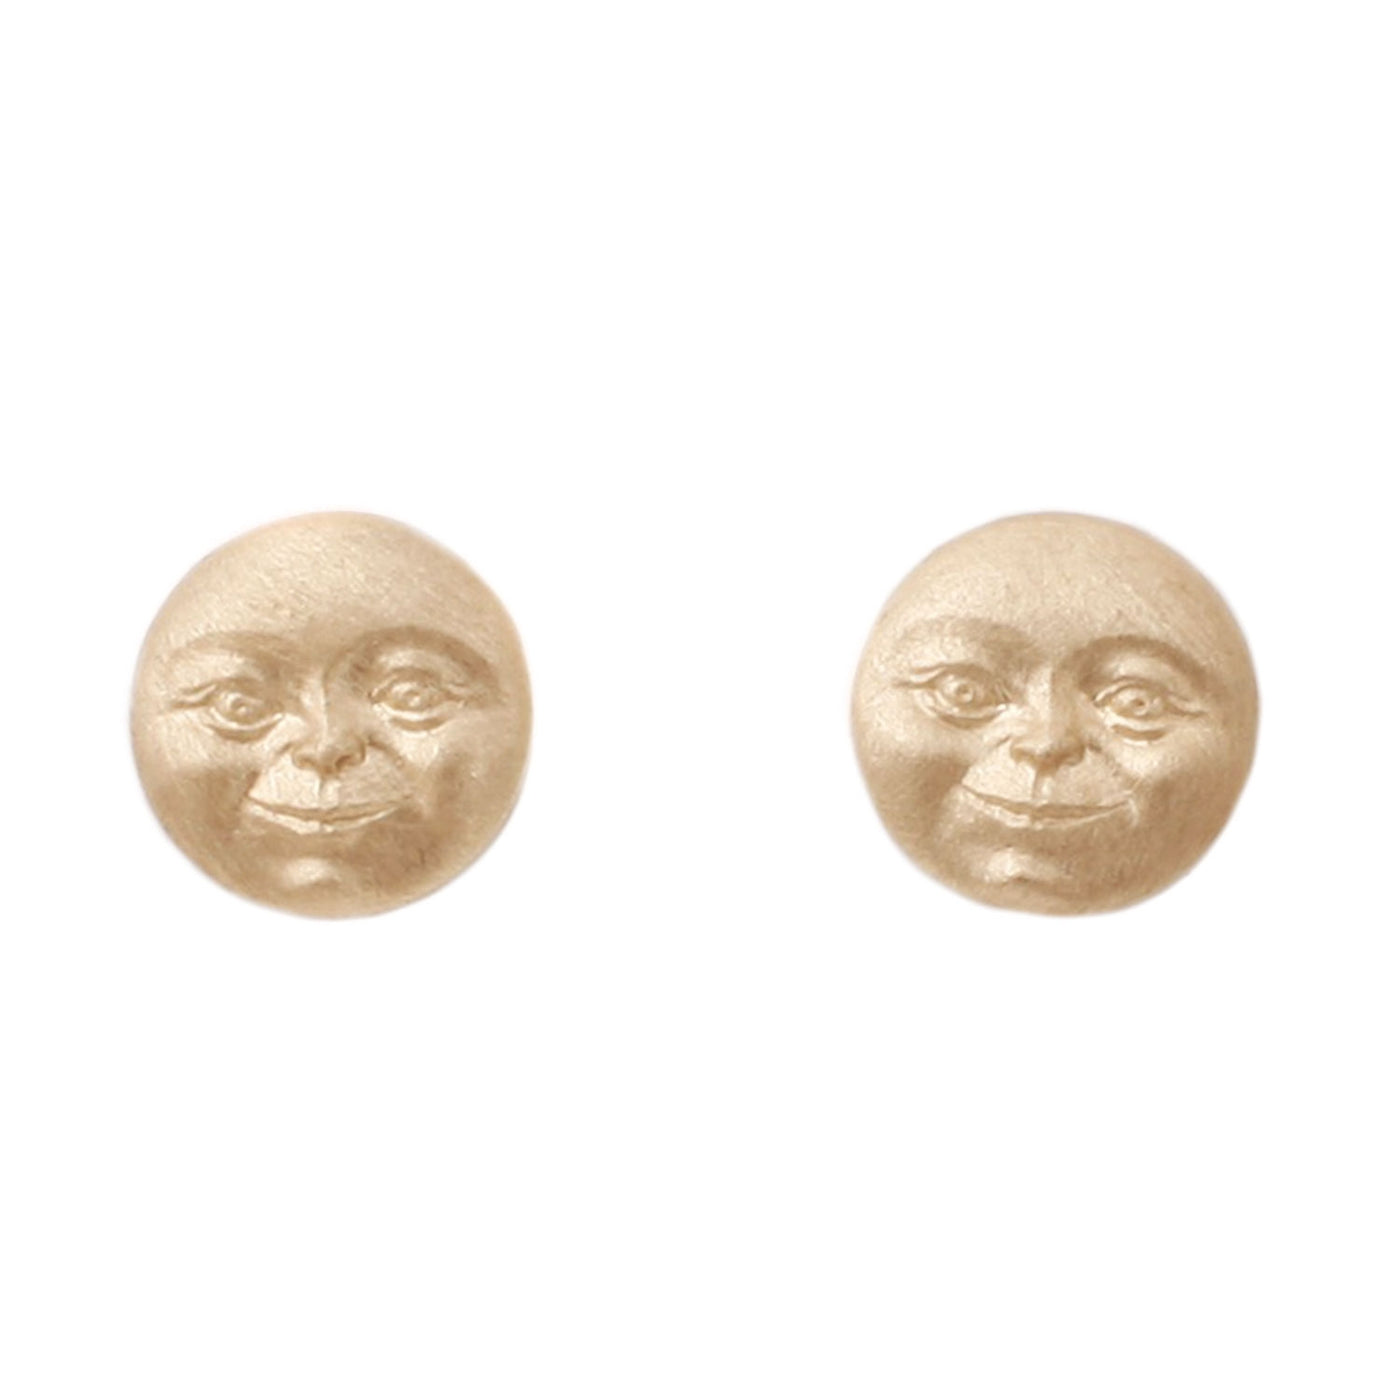 Anthony Lent Invisible Man In The Moon stud earrings